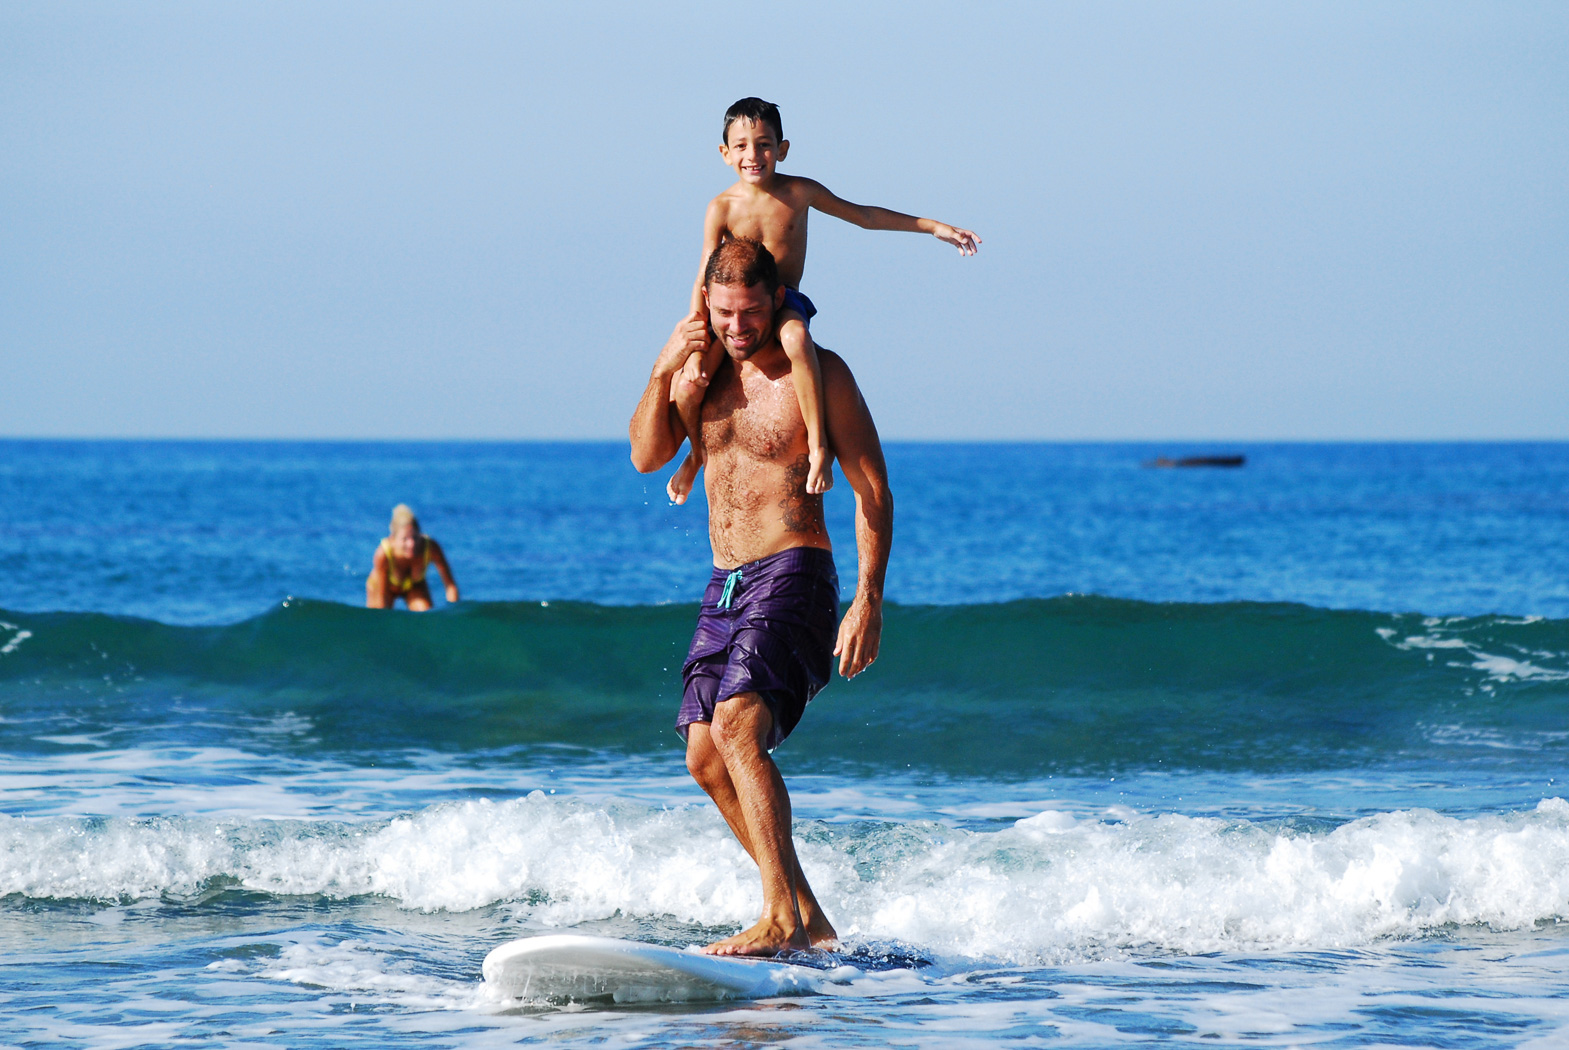 Man and child surfing